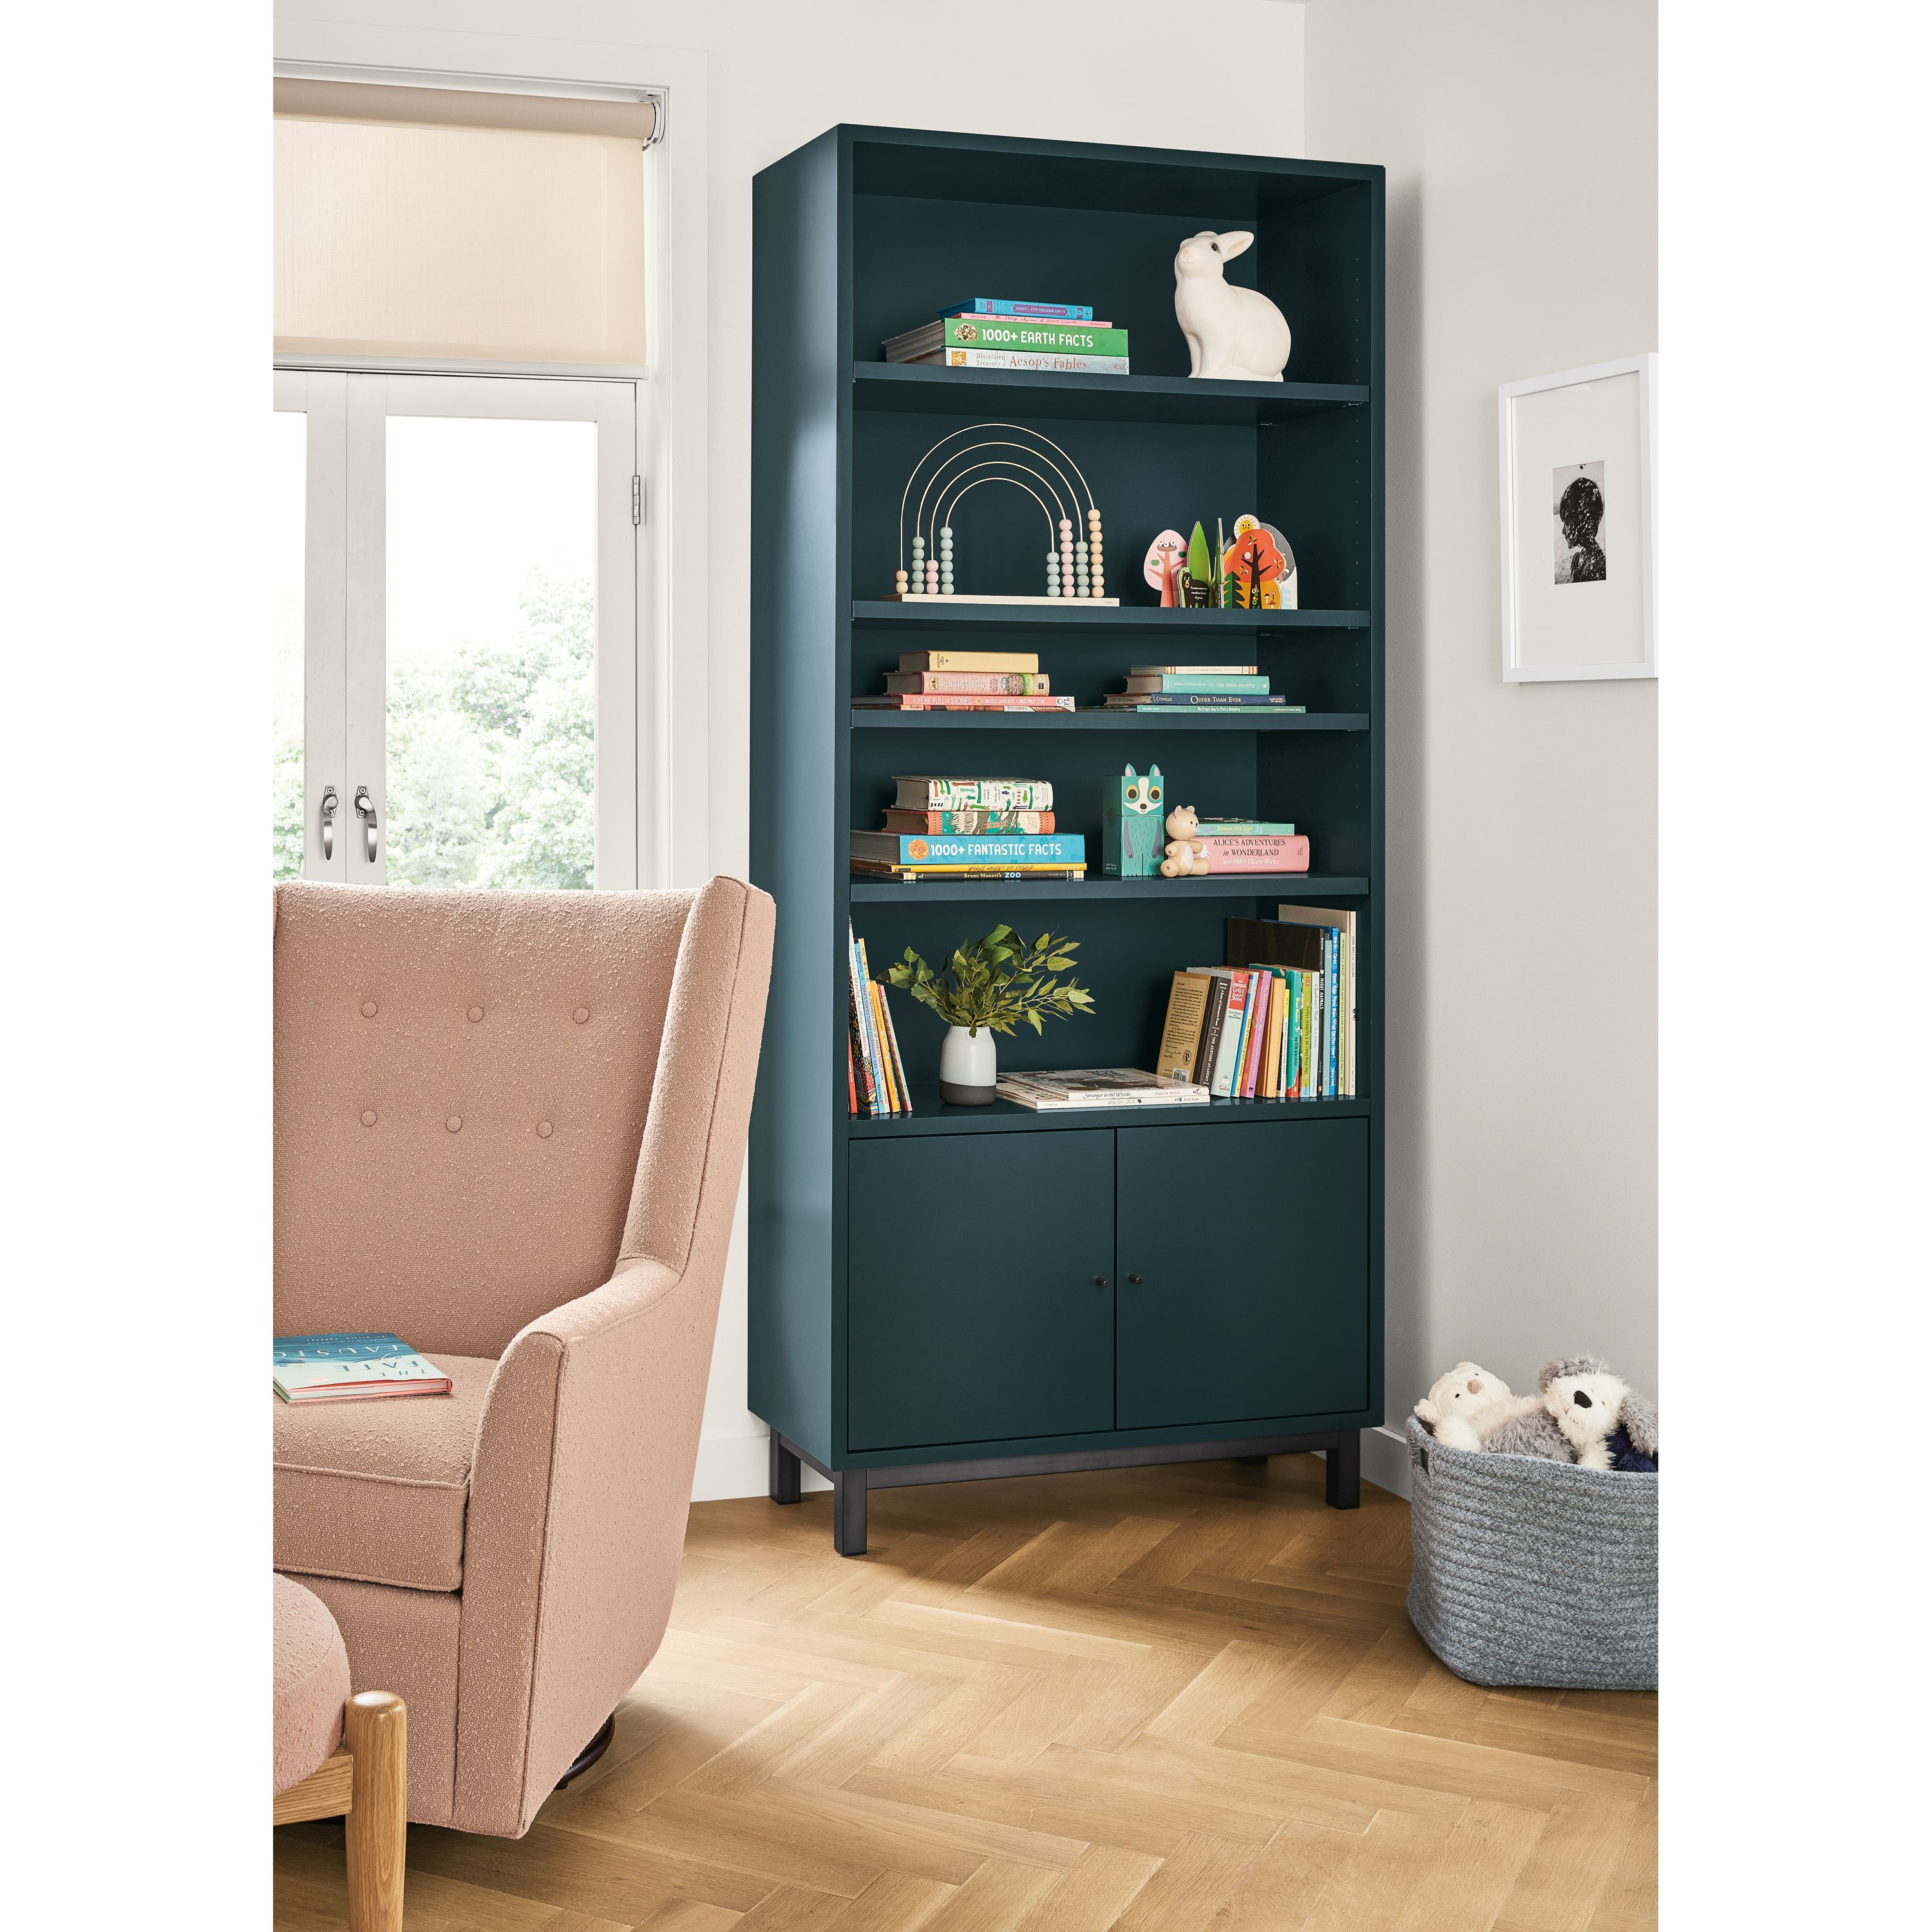 Room Board Copenhagen Bookcases With Doors Drawers In 2020 Ottoman In Living Room Swivel Glider Chair Bookcase